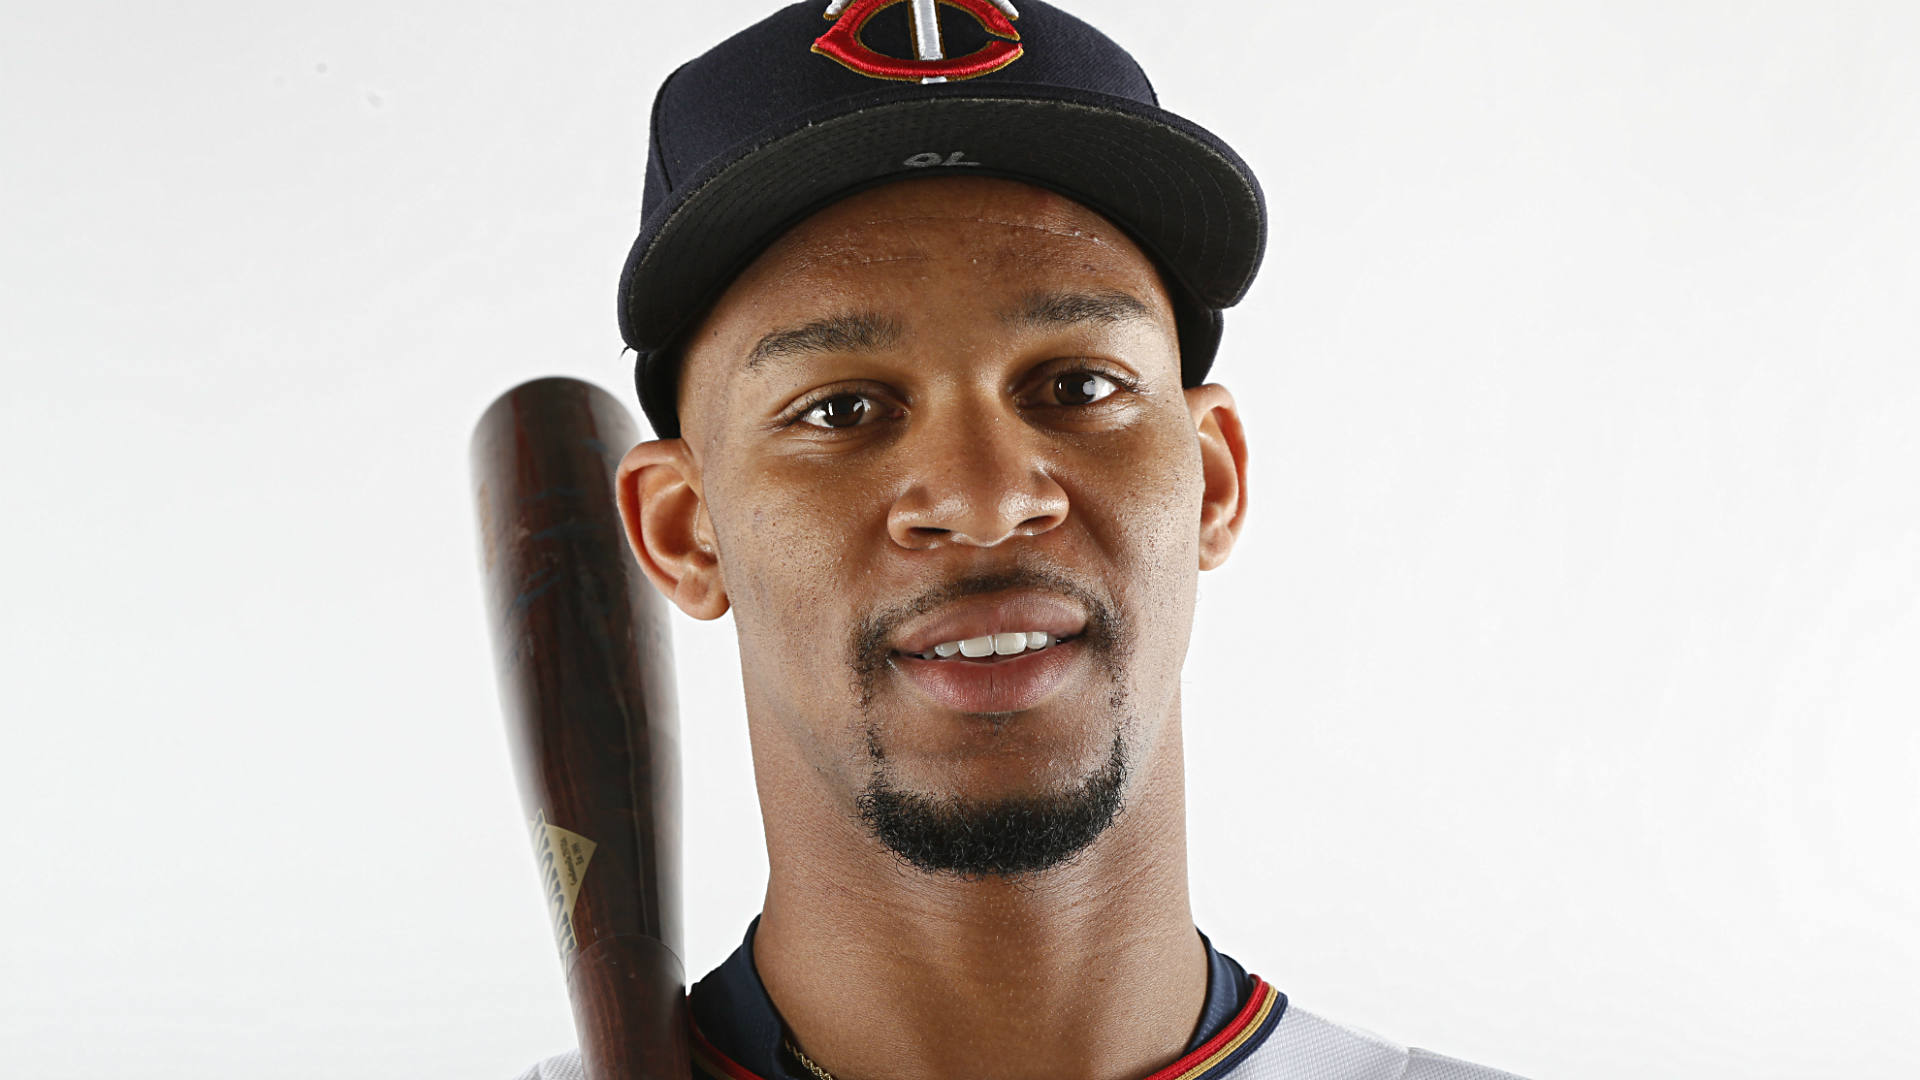 Byron-Buxton-FTR-Getty.jpg